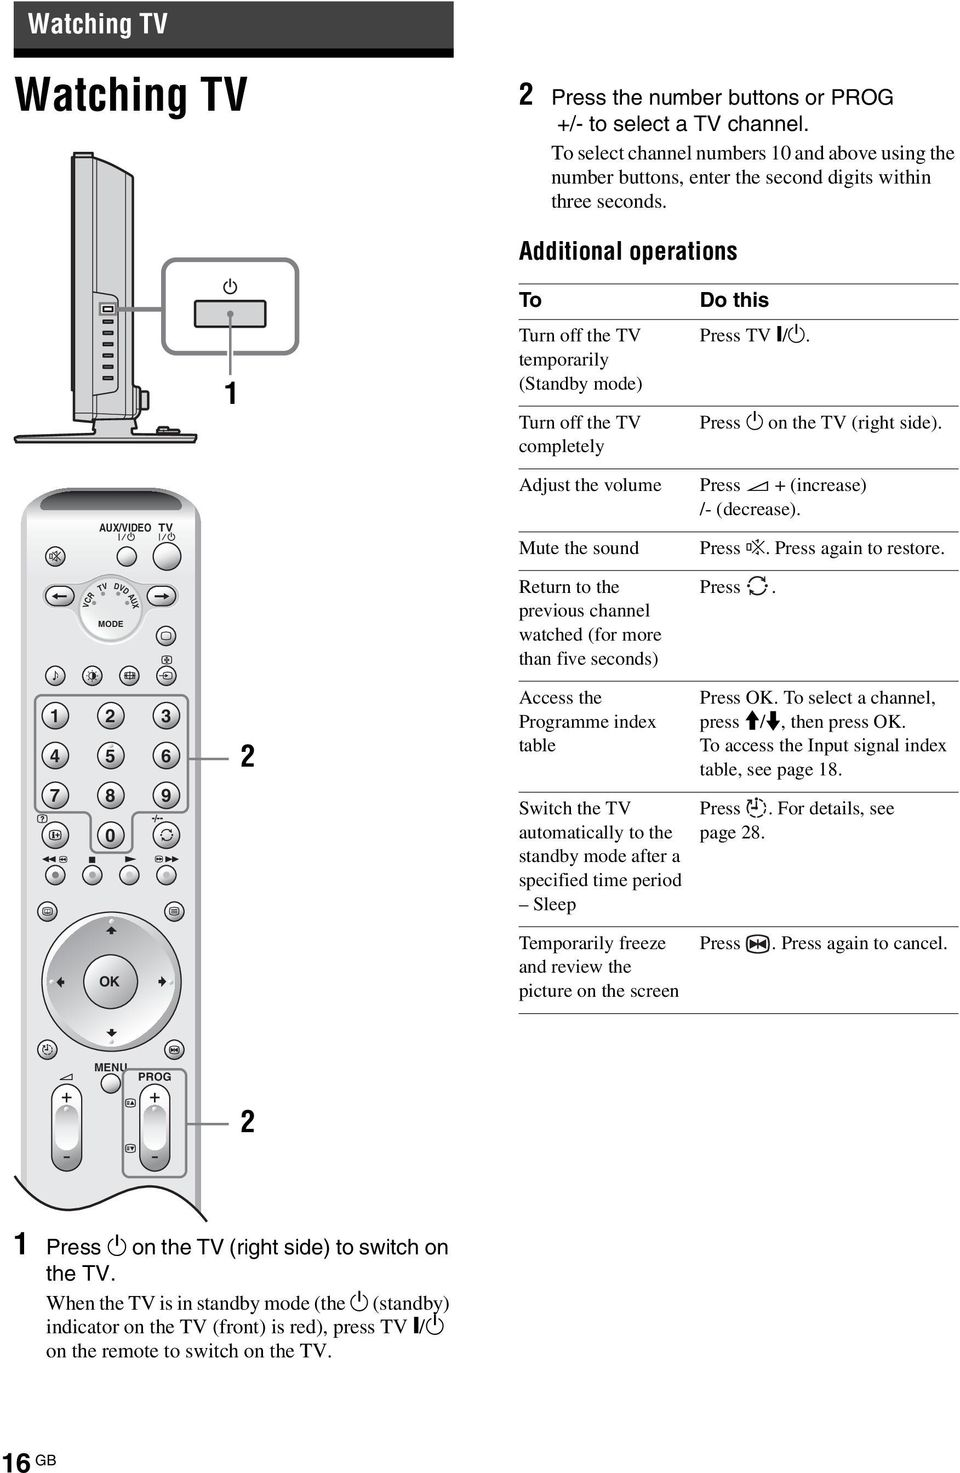 VCR AUX/VIDEO TV TV DVD AUX MODE Adjust the volume Mute the sound Return to the previous channel watched (for more than five seconds) Press 2 + (increase) /- (decrease). Press %.